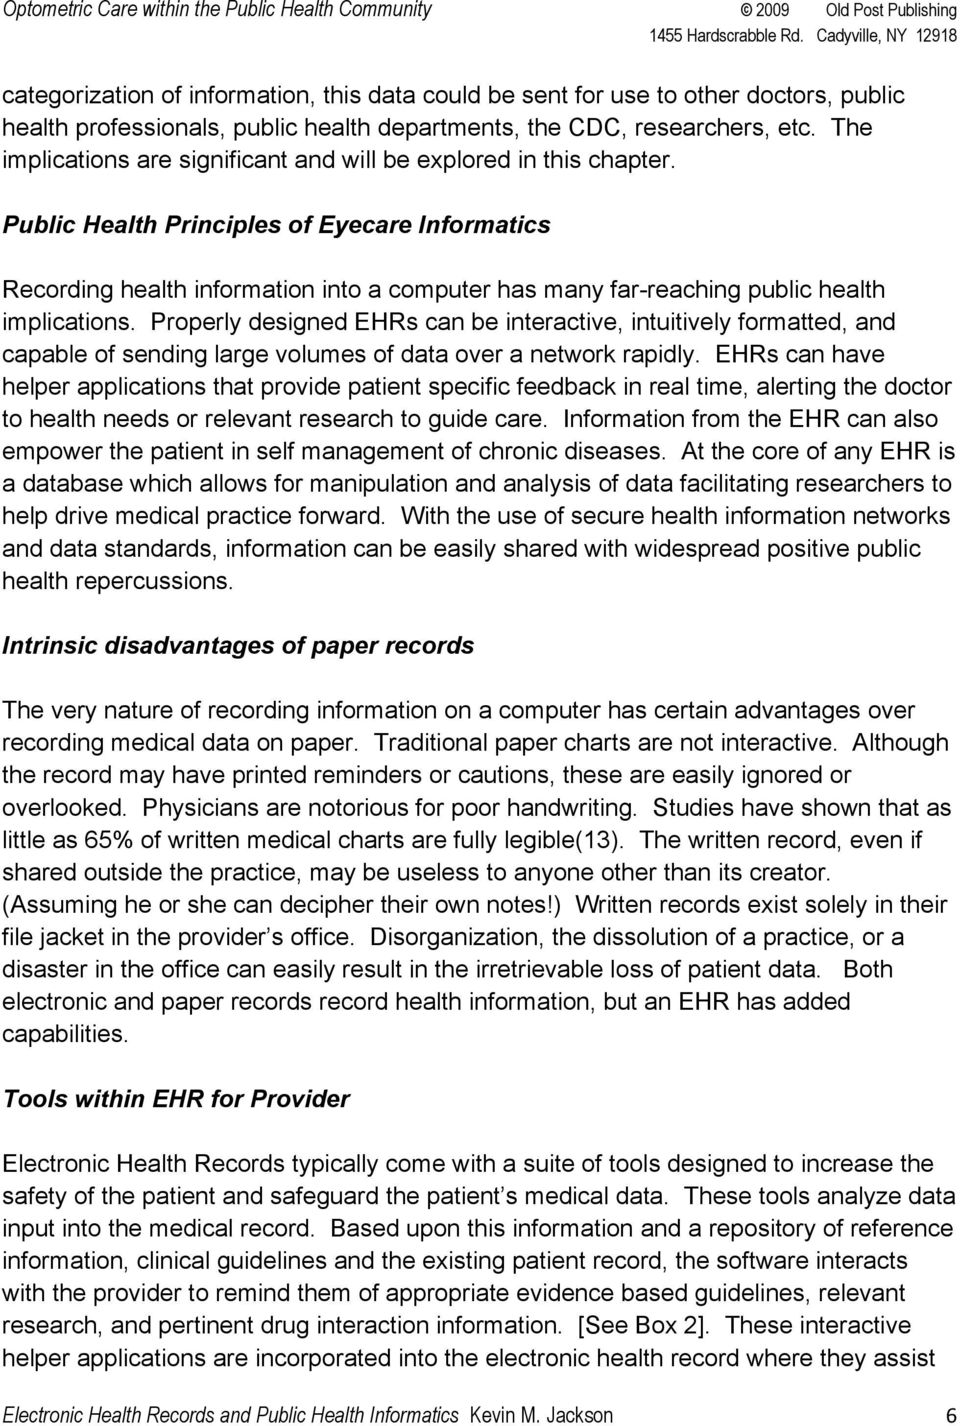 Public Health Principles of Eyecare Informatics Recording health information into a computer has many far-reaching public health implications.